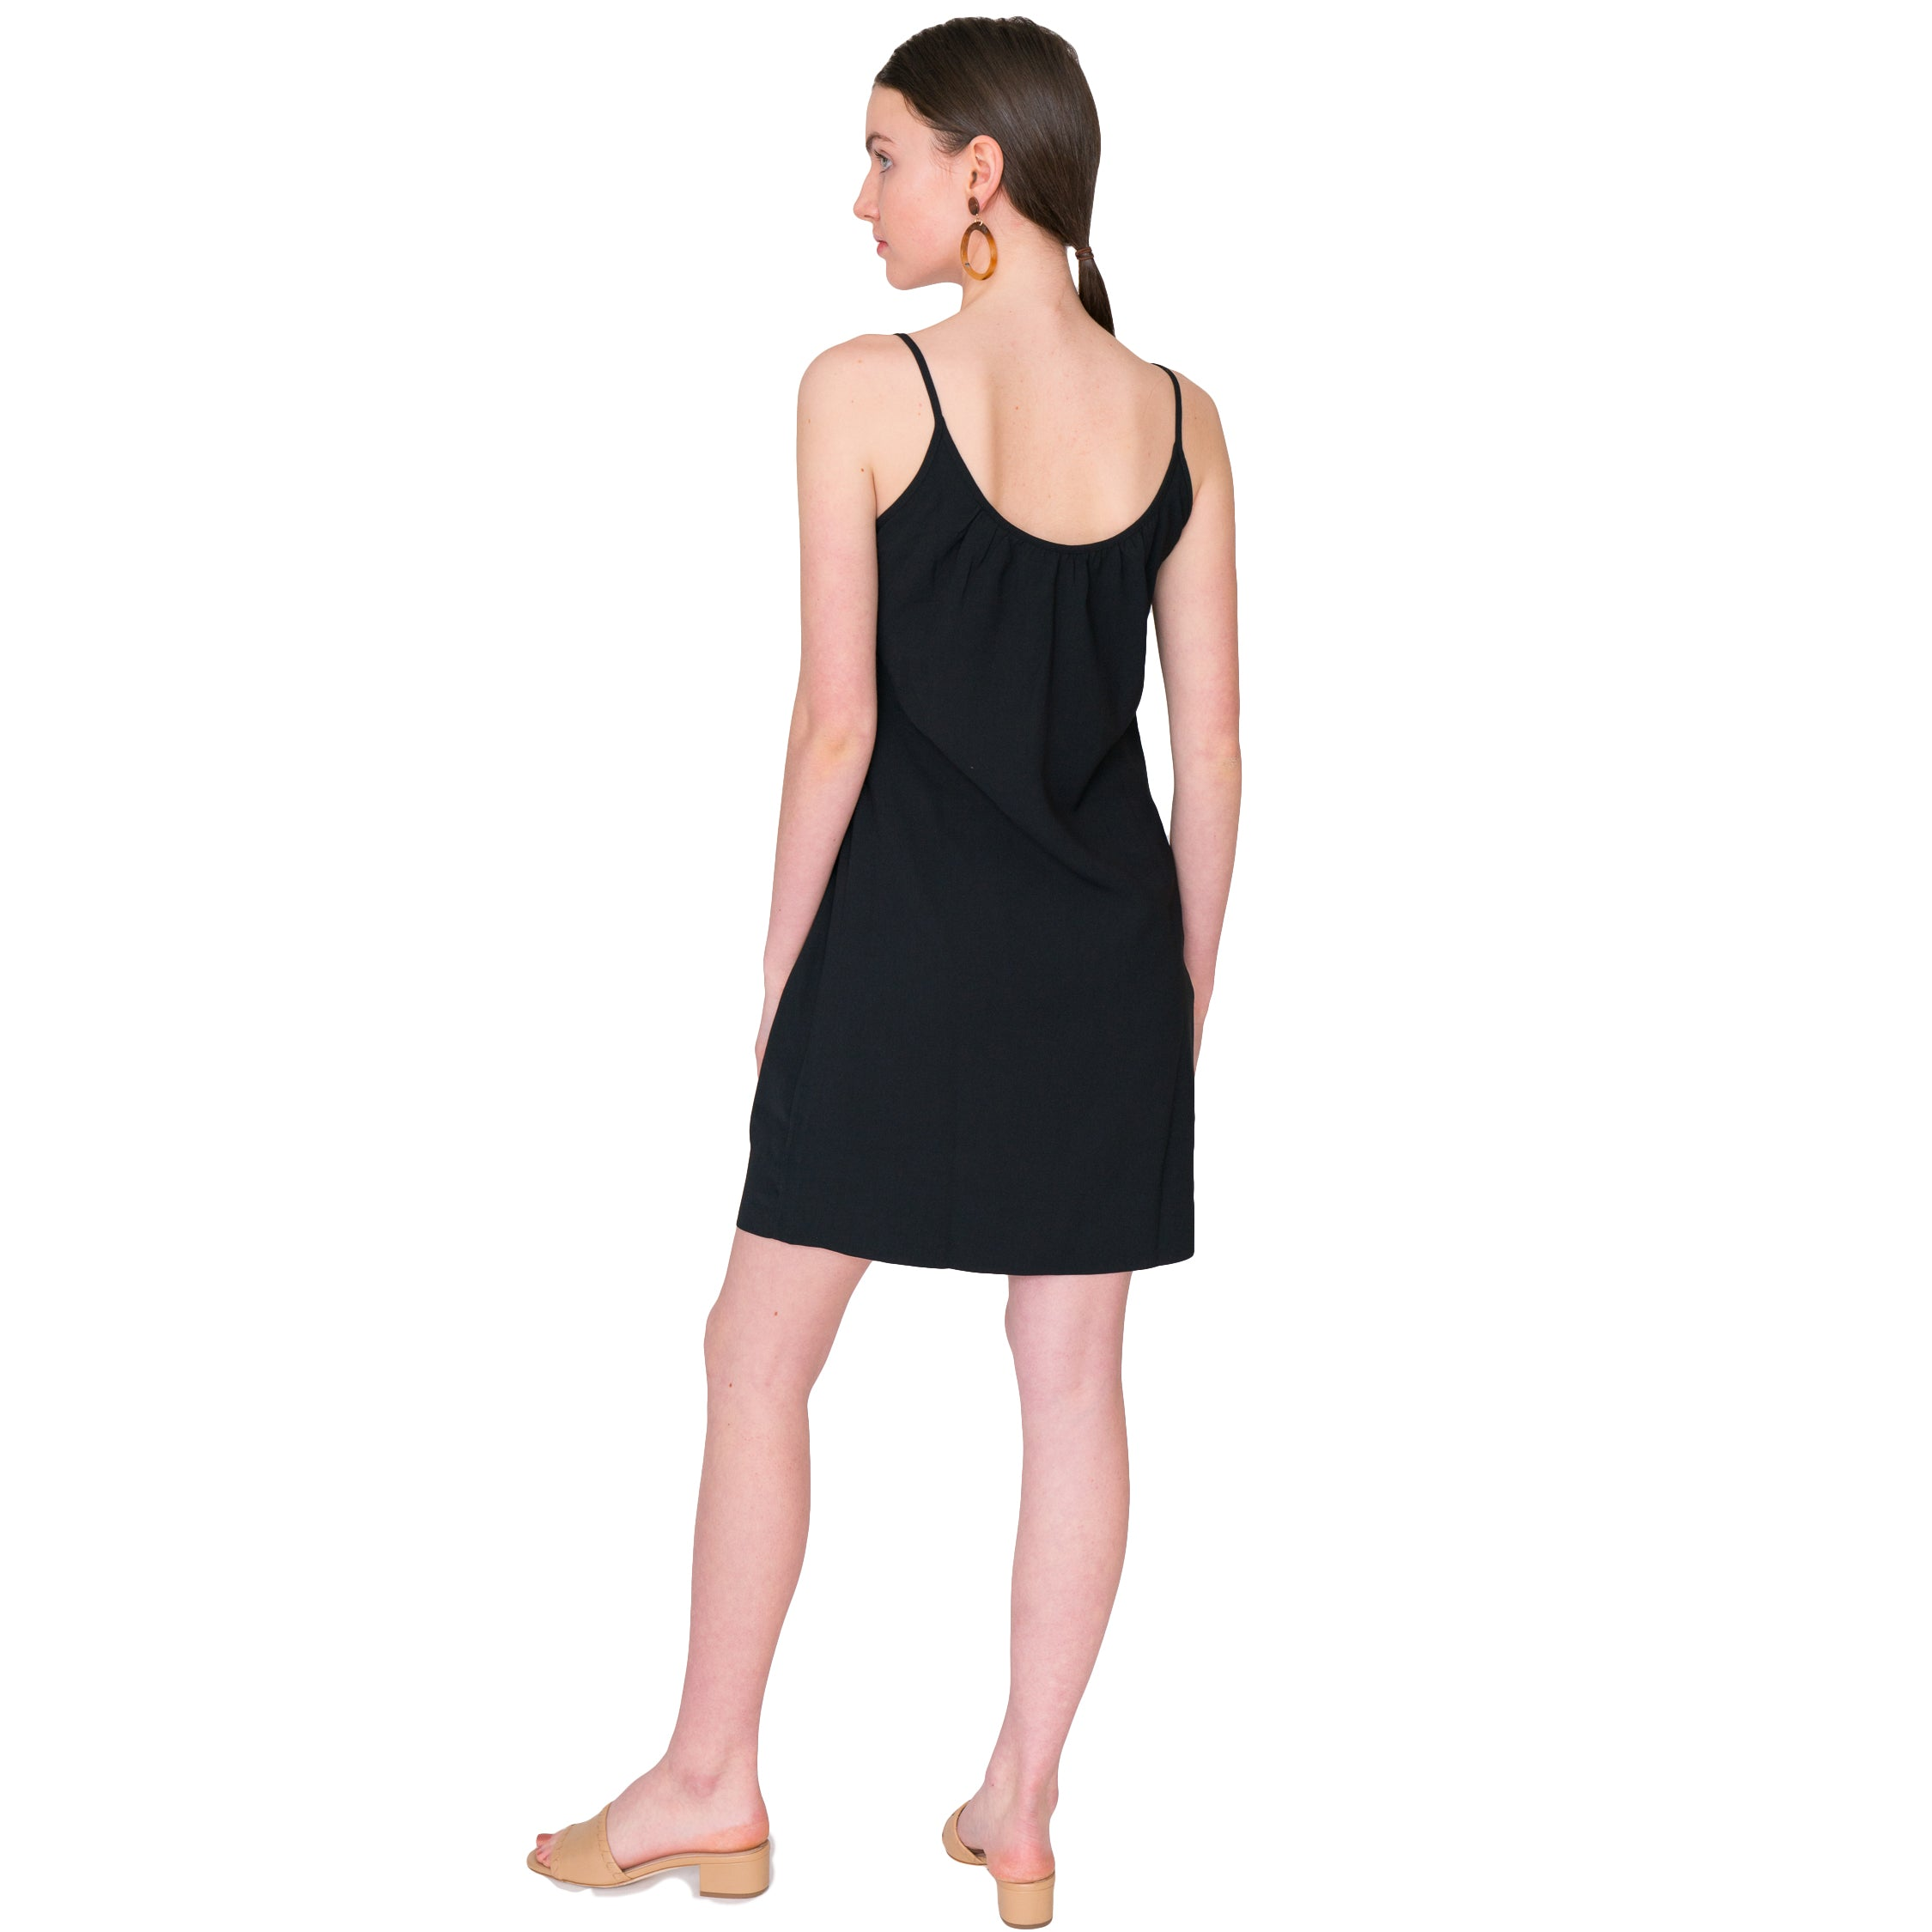 Jill  Stretch Twill Camisole Dress in Black or Navy - Elizabeth Ackerman New York